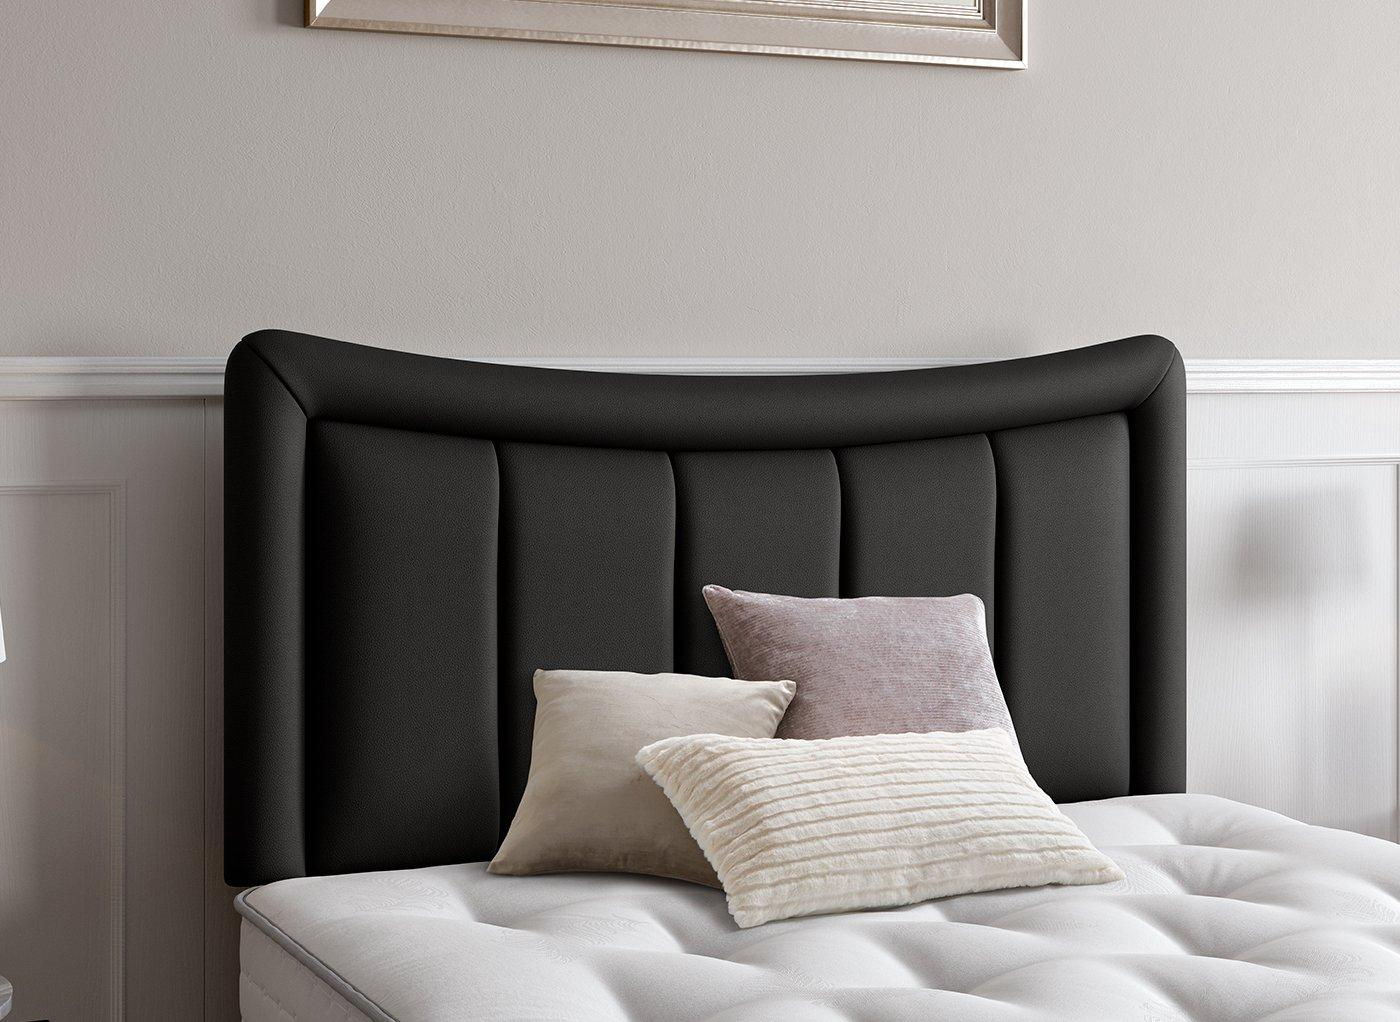 Alabama Headboard 3'0 Single BLACK